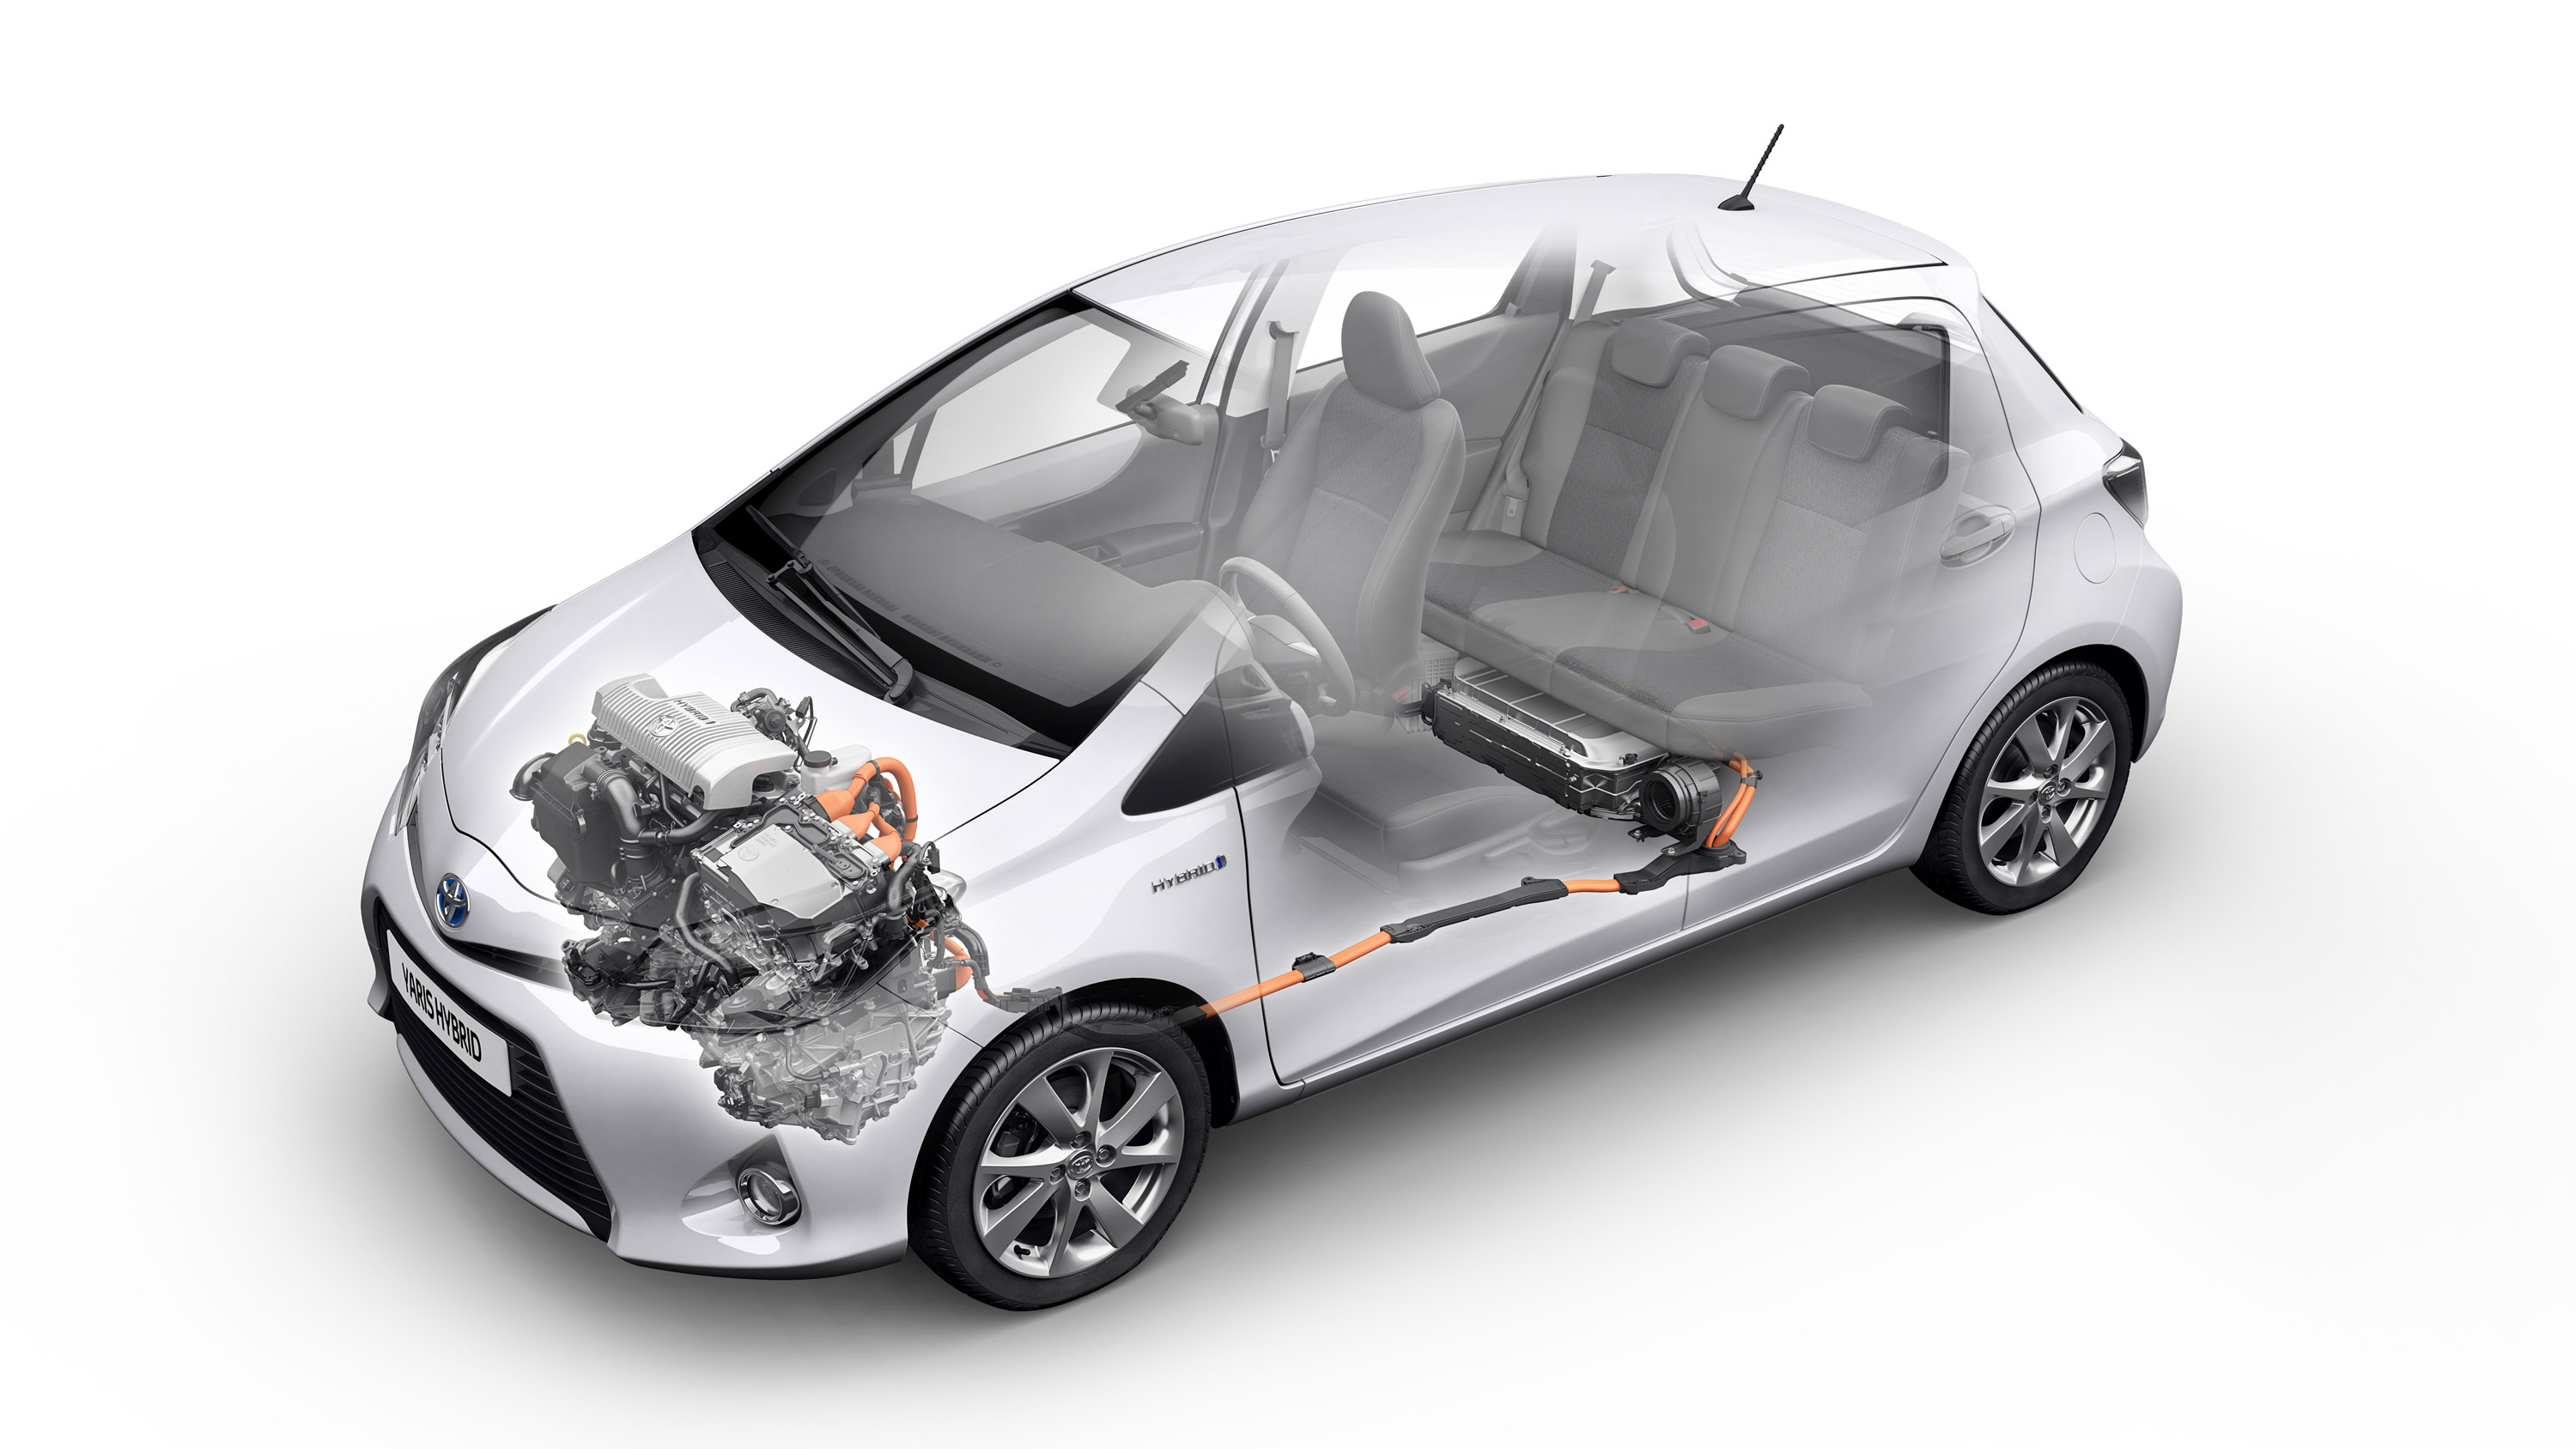 2012 Toyota Yaris Hybrid Prices And Specifications Announced Vitz Fuse Box Hsd